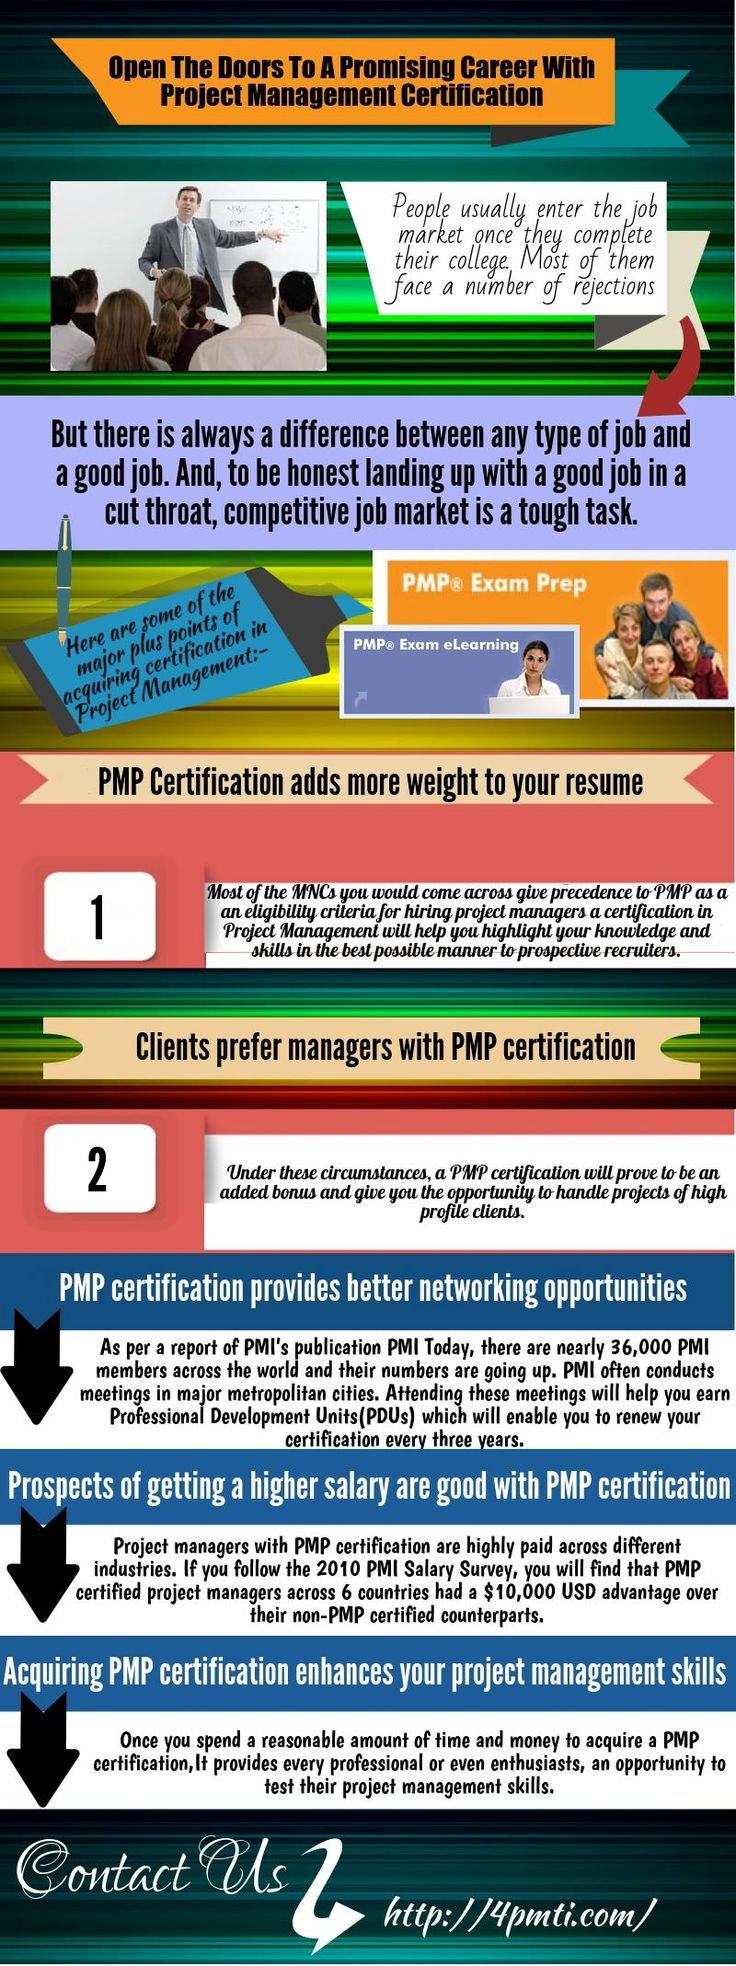 18 best project management training institute images on pinterest acquiring pmp certification enhances your project management skills once you spend a reasonable amount of time xflitez Choice Image